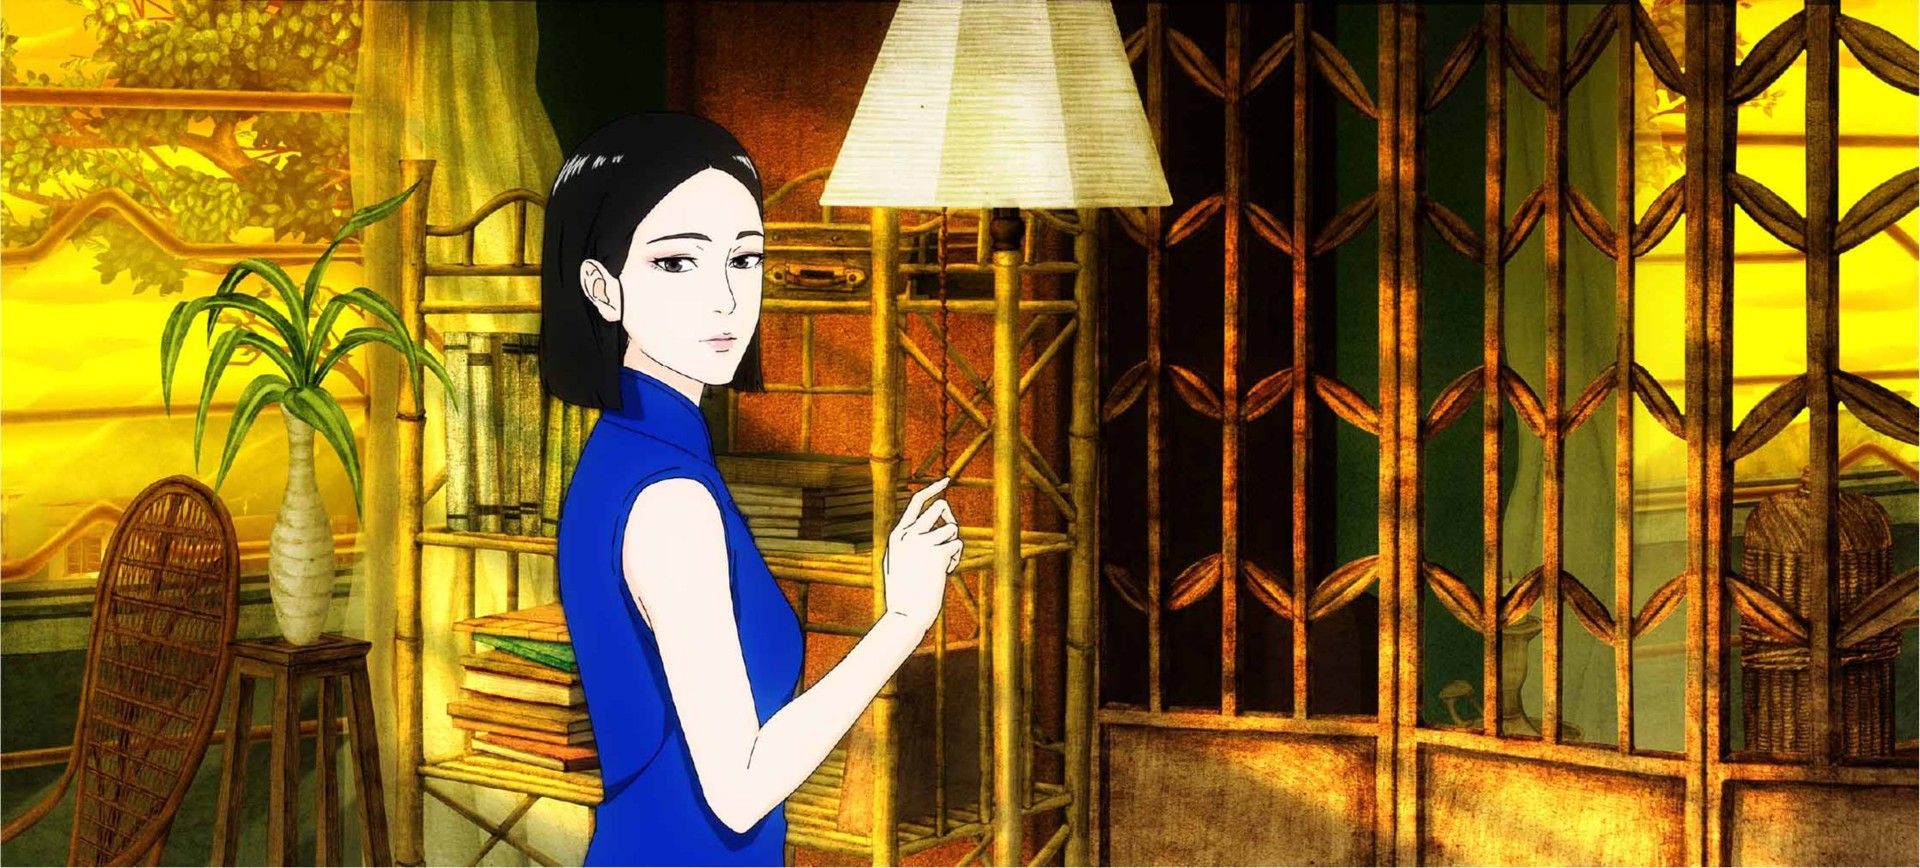 Venice film festival 2019: Yonfan animation in competition for